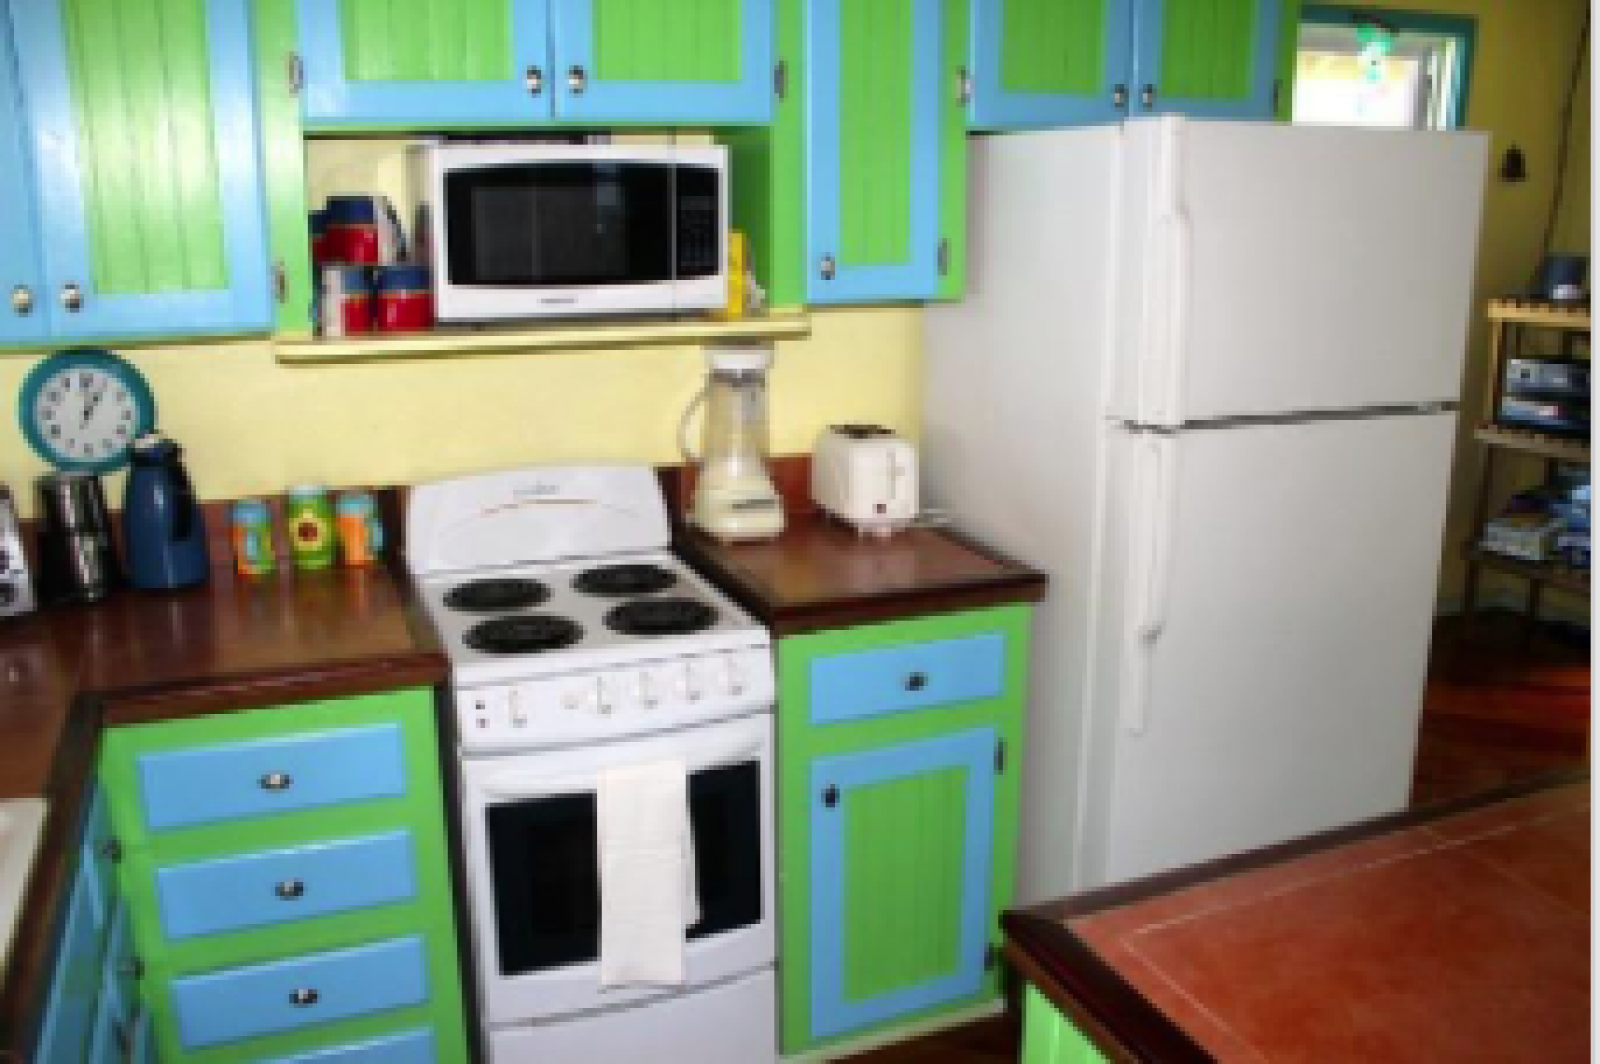 Modest but fully equipped kitchen.